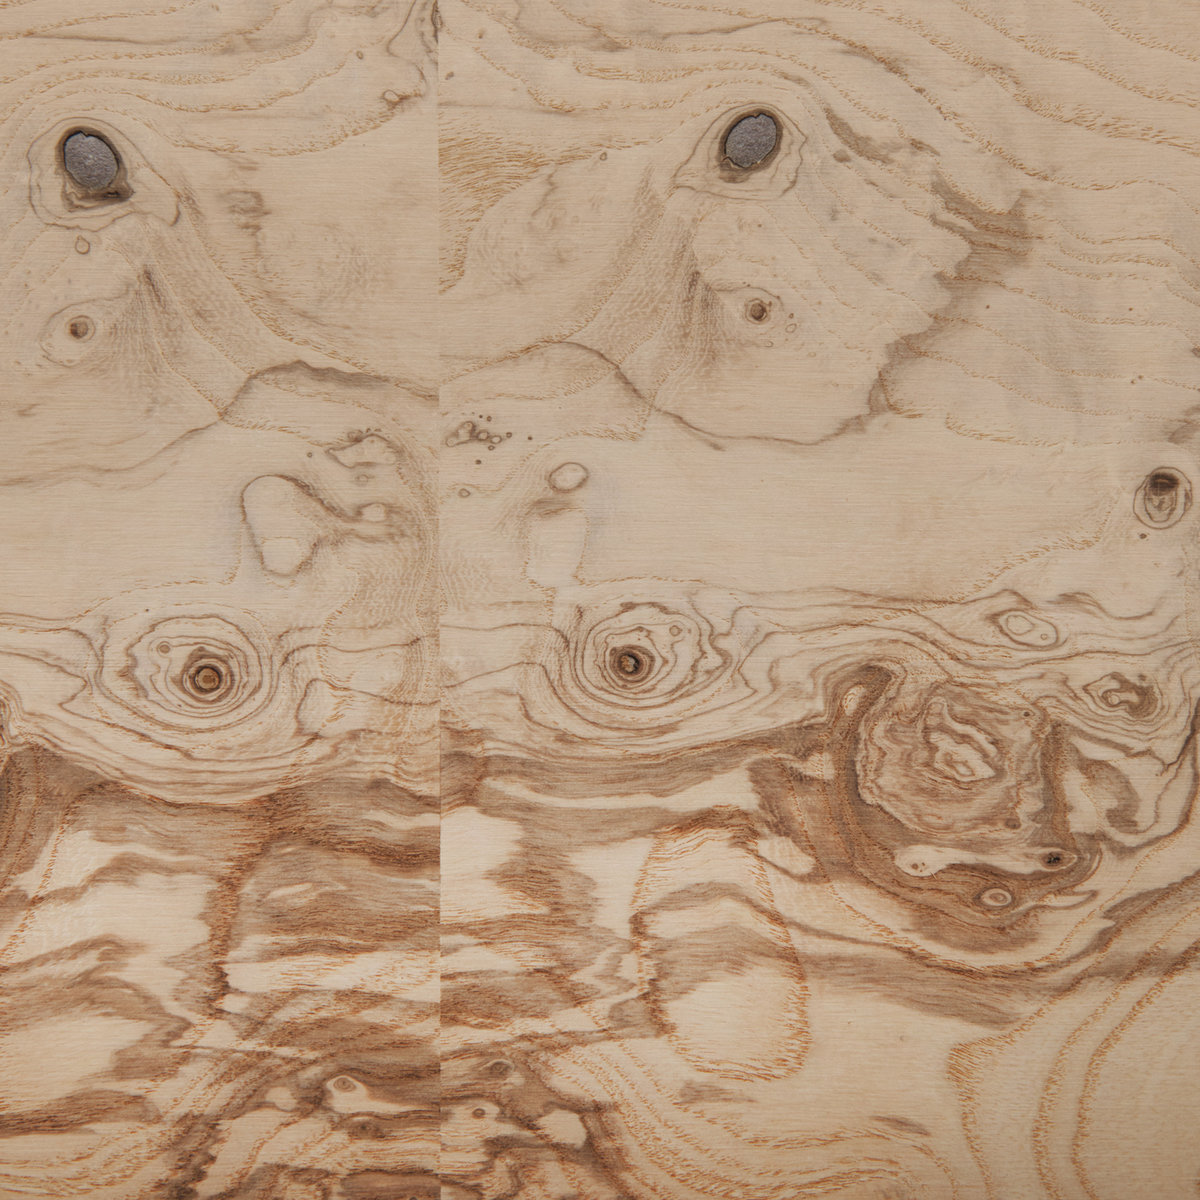 Sauers Olive Ash Burl Veneer Sheet 4 X 8 2 Ply Wood On Wood